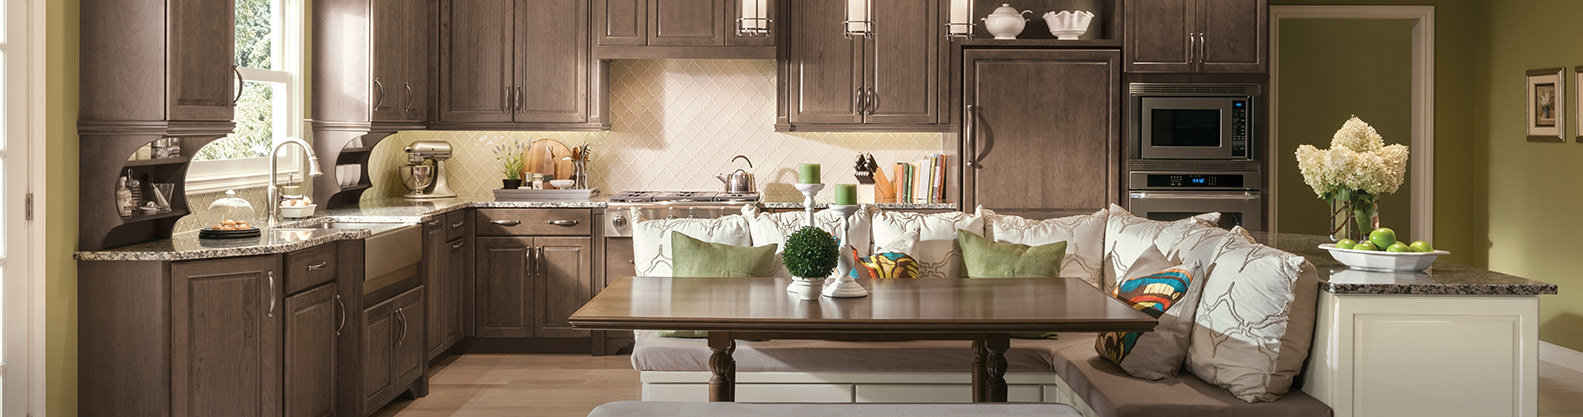 Merillat Cabinetry | Madison, WI and Janesville, WI